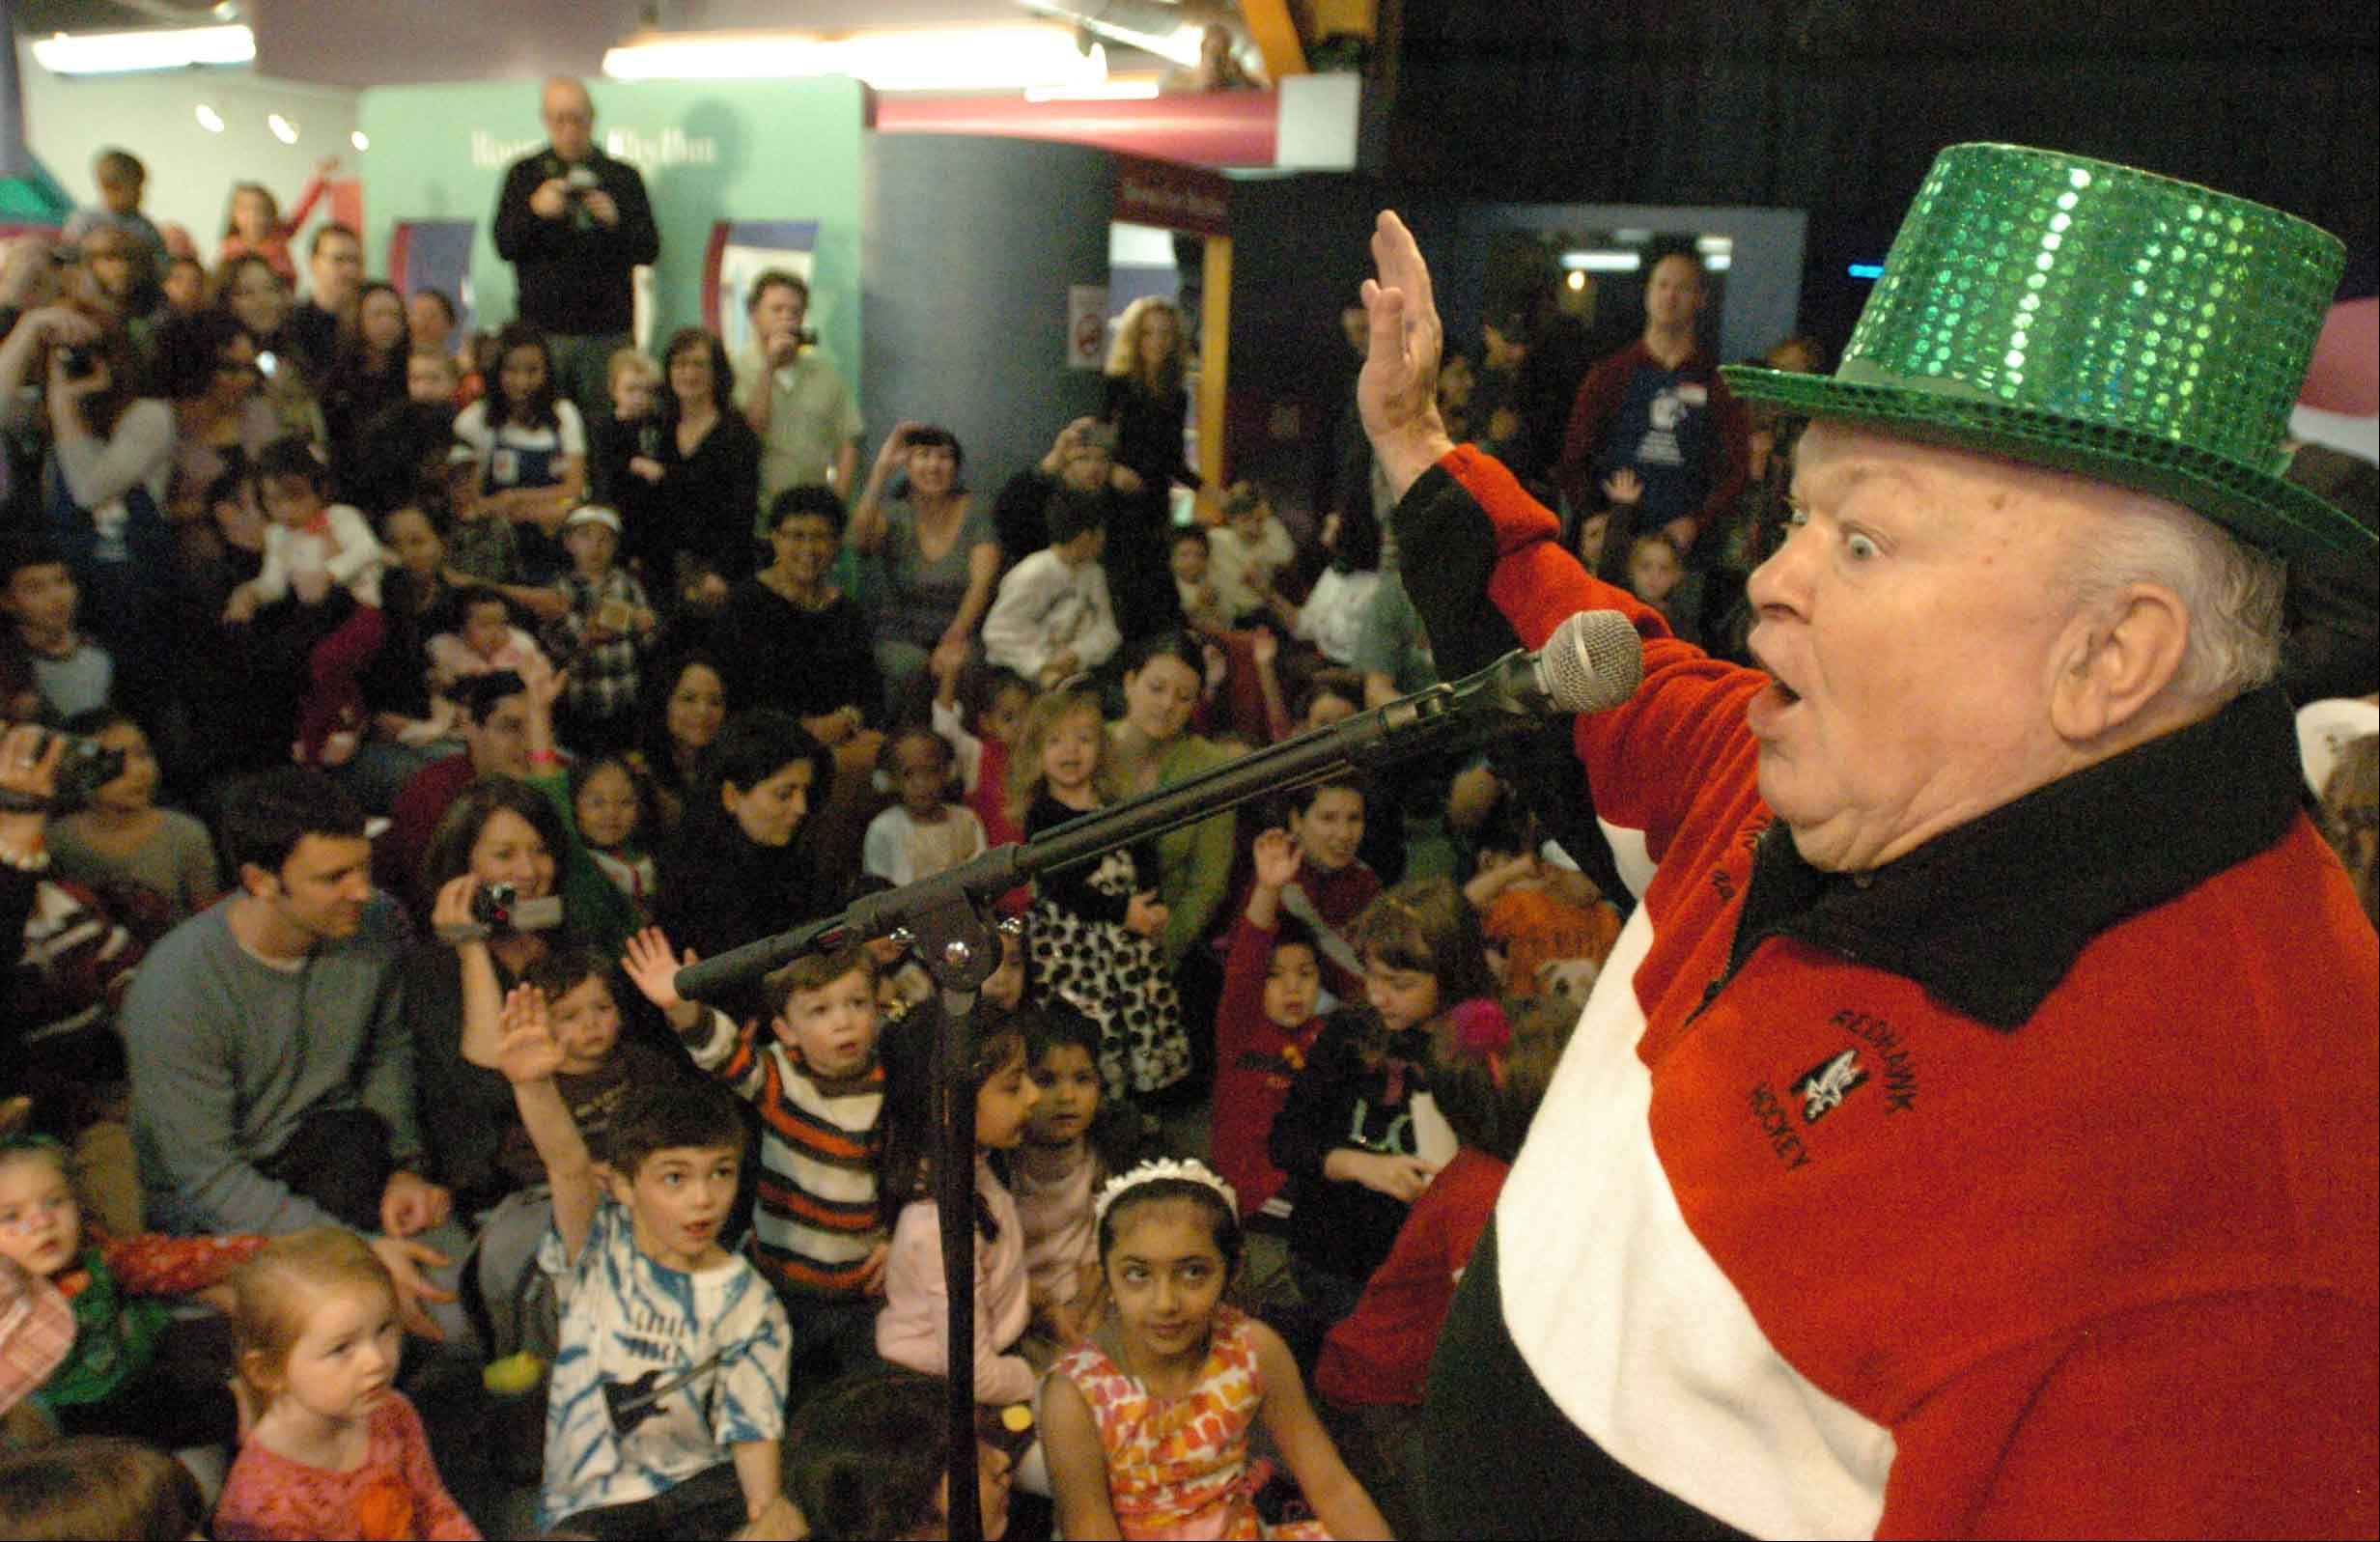 Naperville Mayor George Pradel, who has a hat for nearly every occasion, will lead kids and their parents in a countdown to noon on Dec. 31 as part of the DuPage Children's Museum's annual Bubble Bash celebration, being held this year at North Central College.